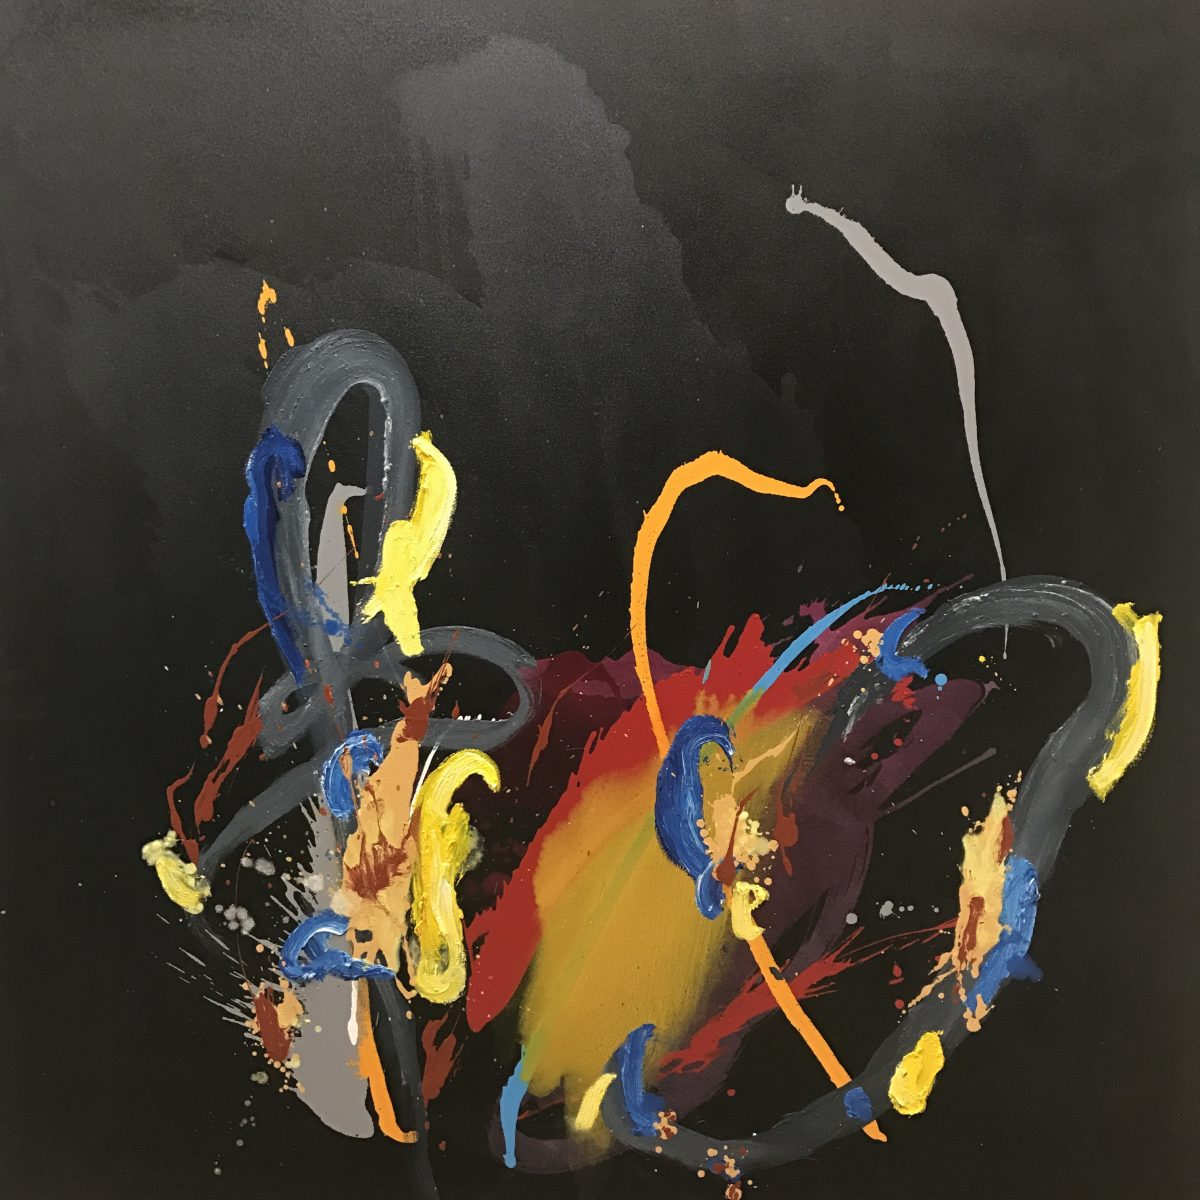 Graham Kuo_And all that joy_Oil and acrylic on canvas_152x152cm